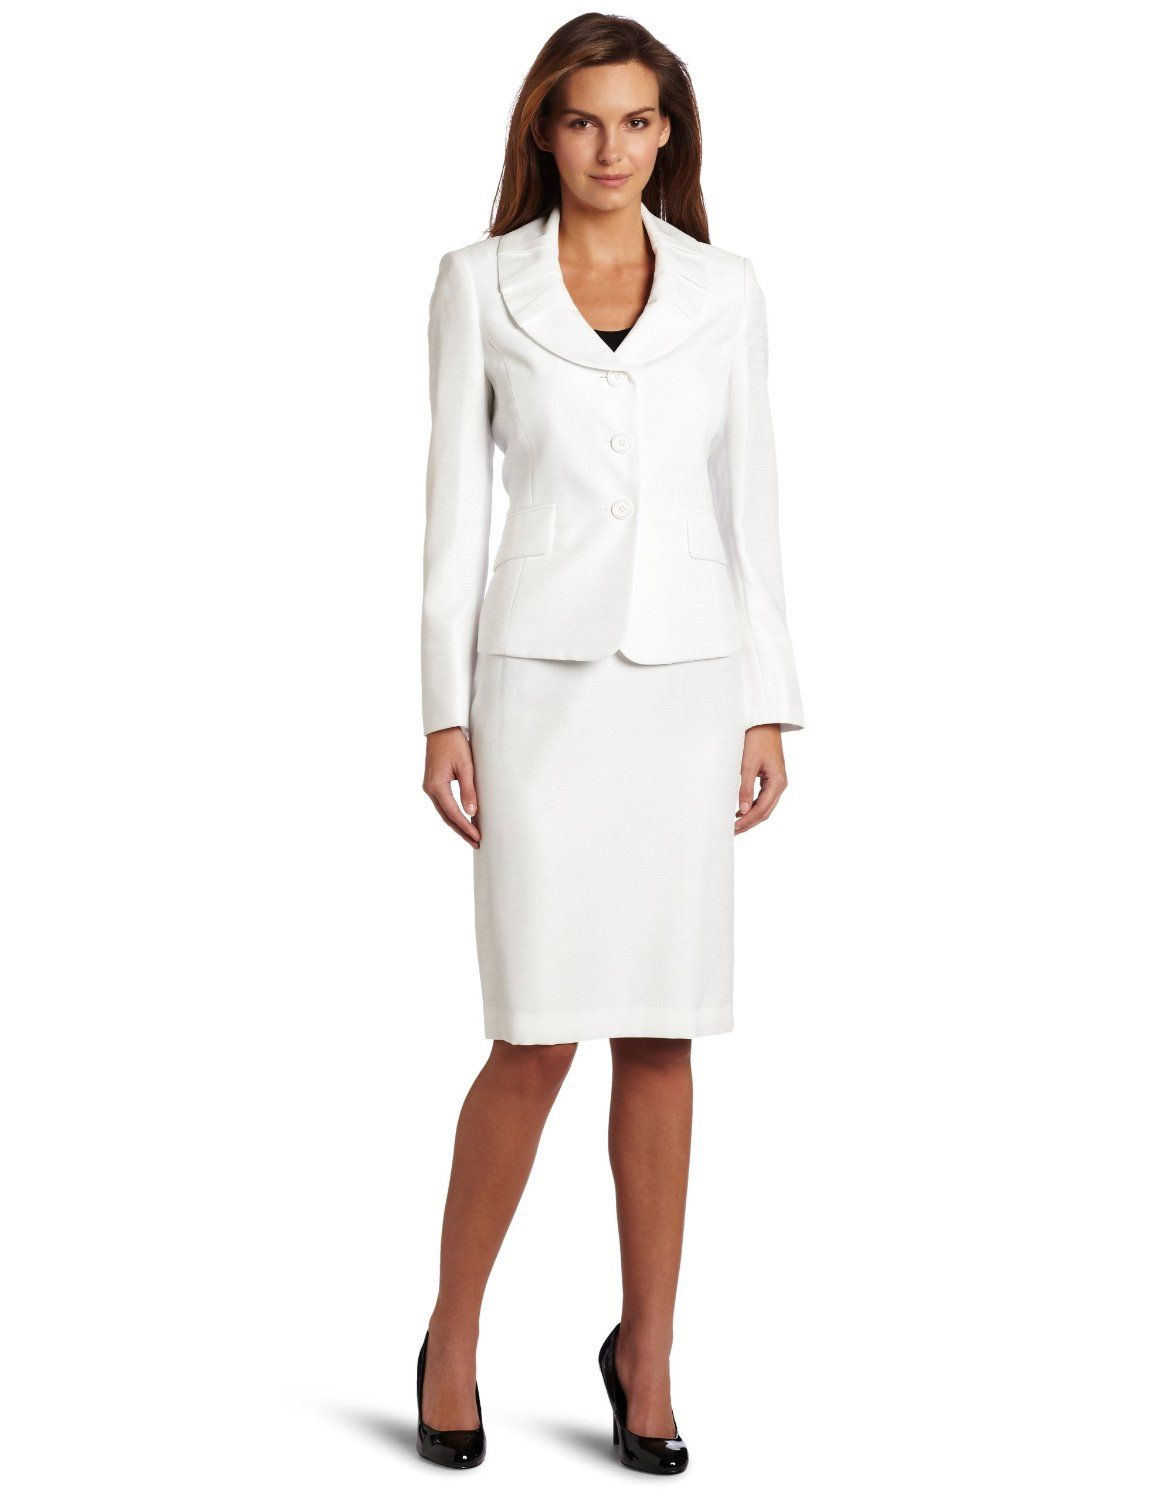 Business Suits For Women Business Casual Dress And Suits For Women